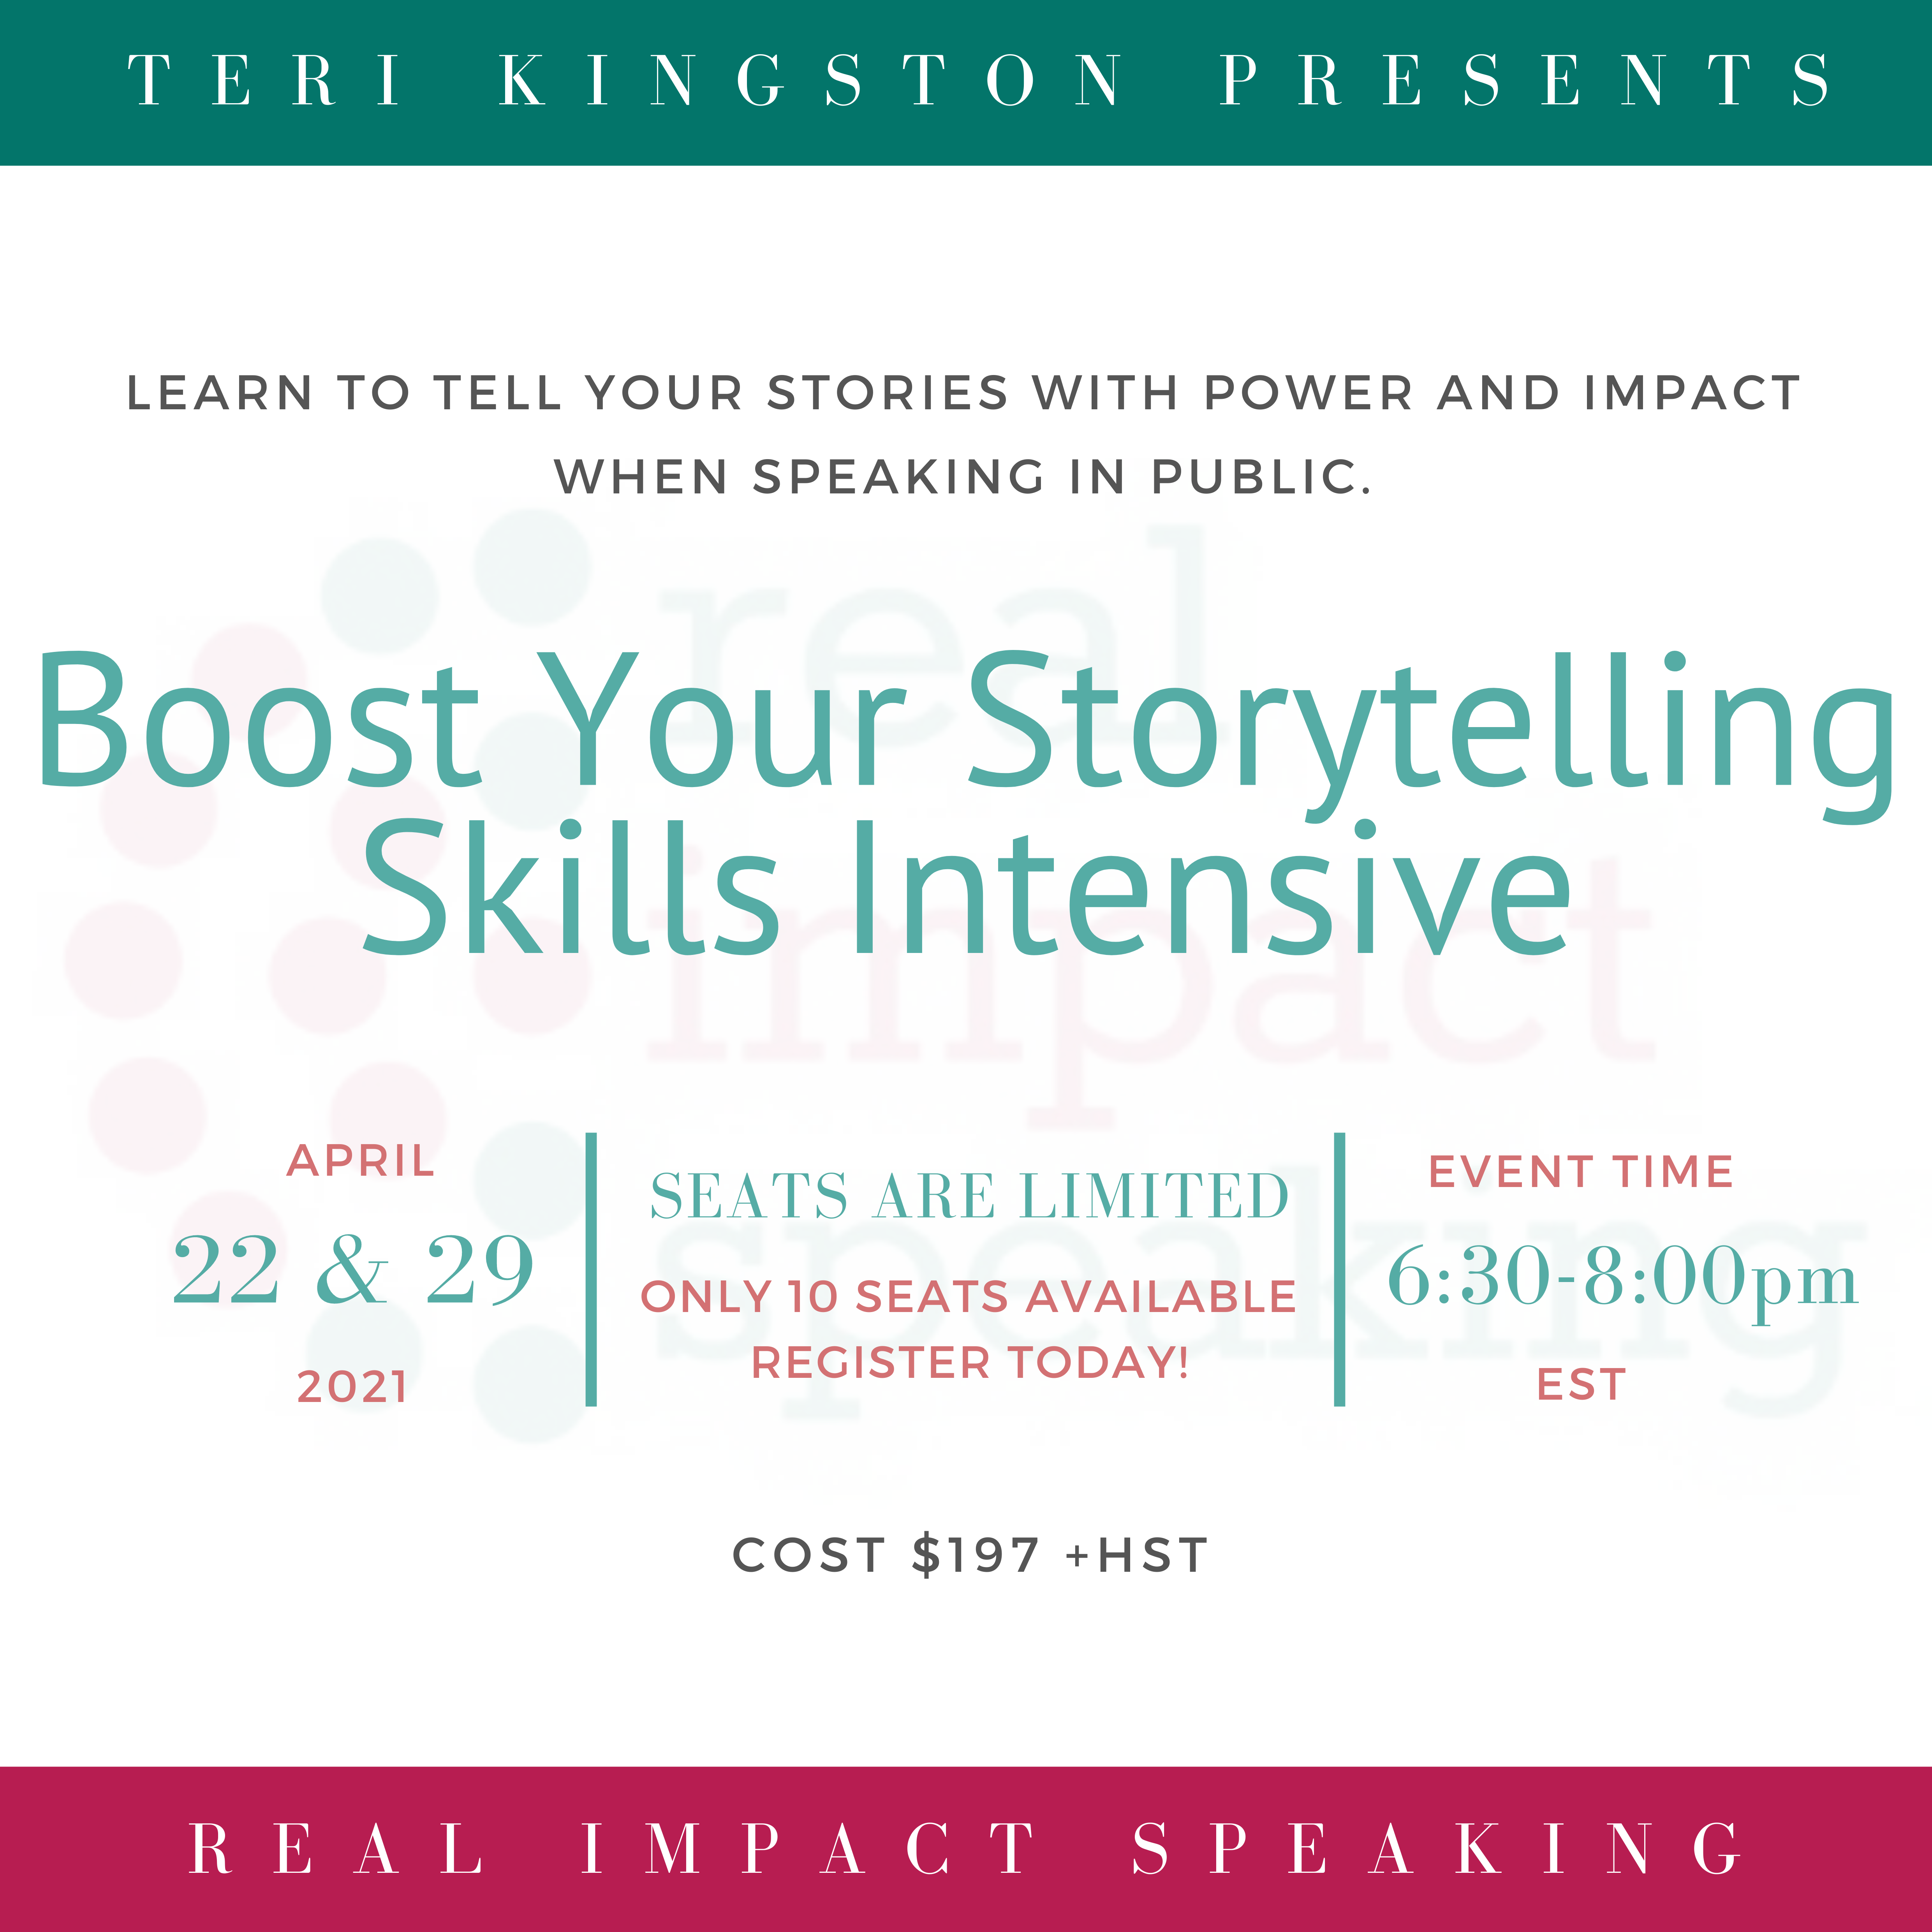 Boost Your Storytelling Skills Intensive